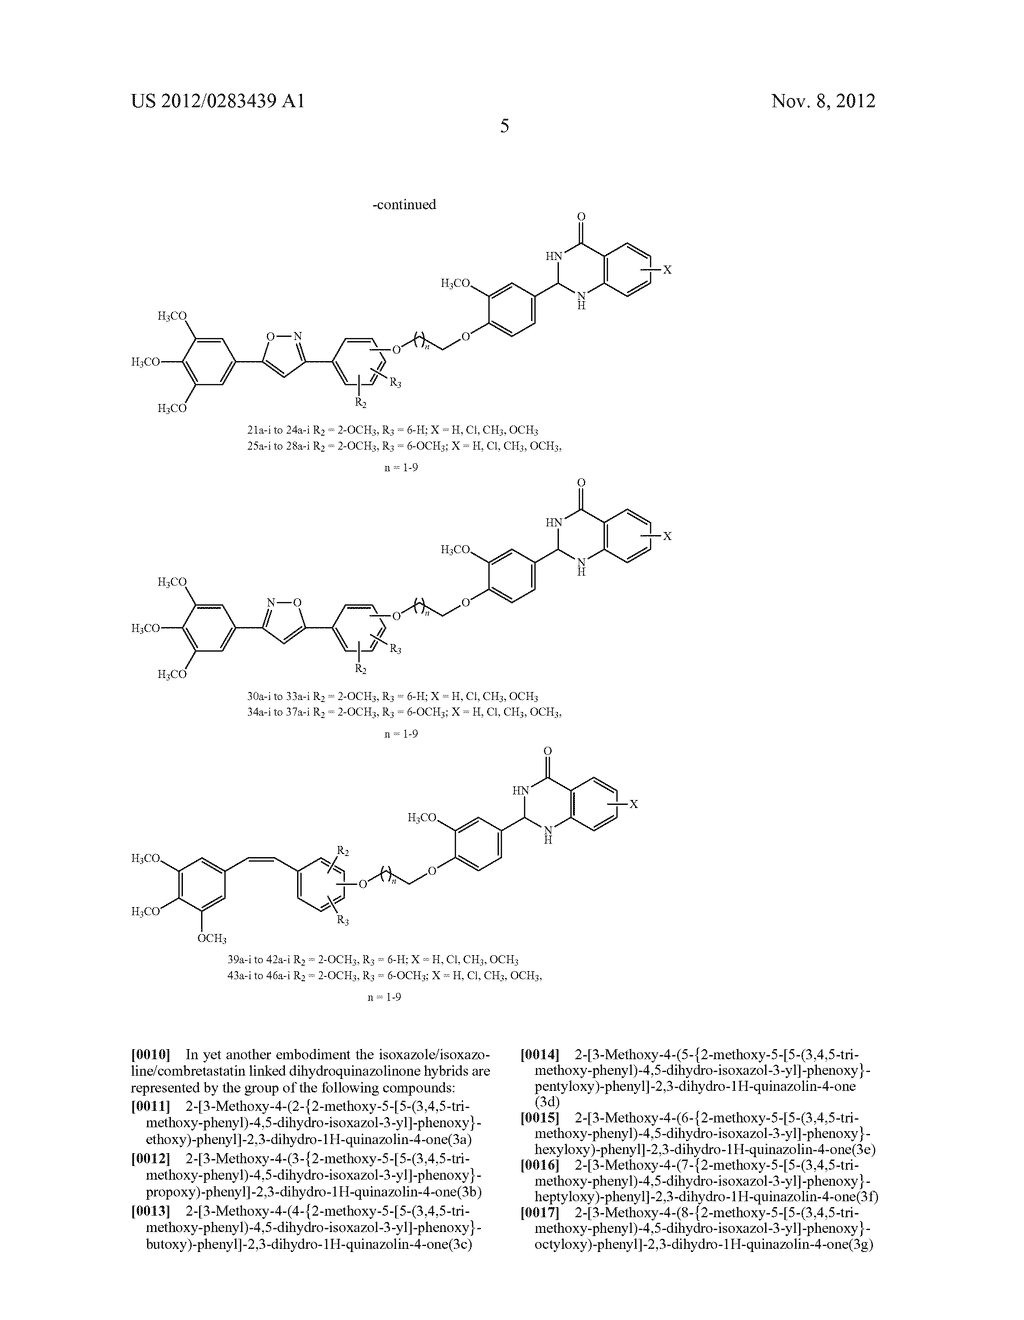 ISOXAZOLE/ISOXAZOLINE/COMBRETASTATIN LINKED DIHYDROQUINAZOLINONE HYBRIDS     AS POTENTIAL ANTICANCER AGENTS AND PROCESS FOR THE PREPARATION THEREOF - diagram, schematic, and image 07